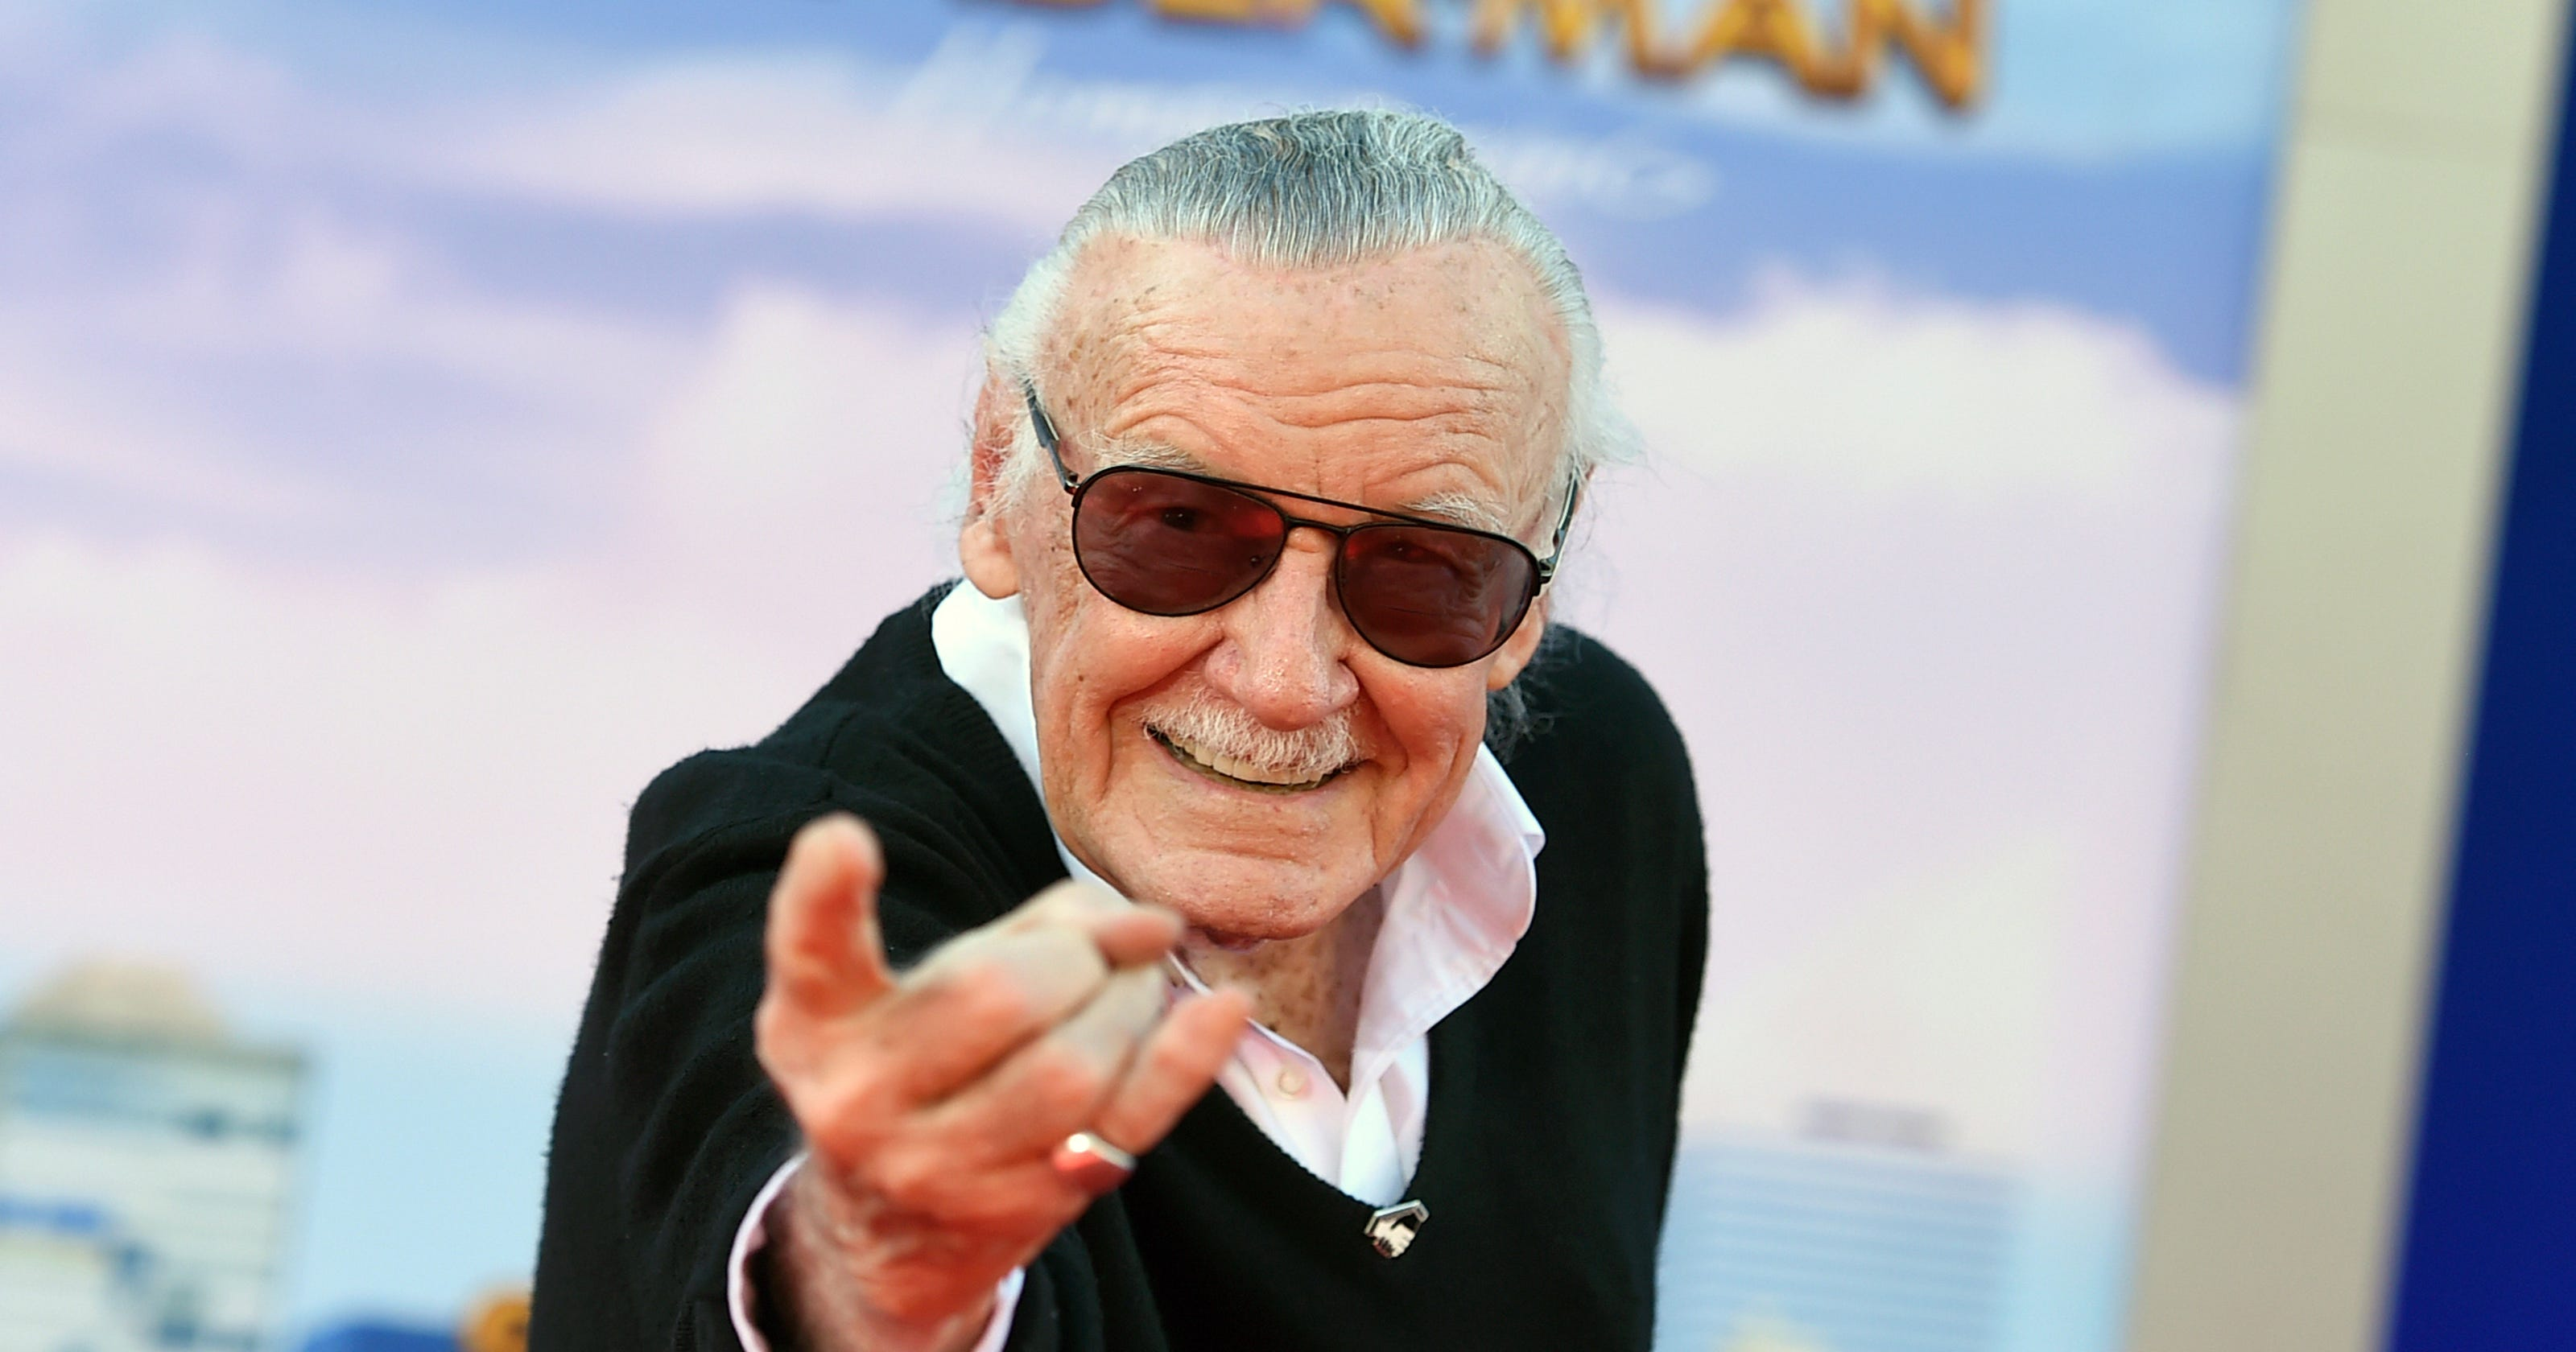 Stan Lee S From Cardiac Arrest Triggered By Respiratory Congestive Heart Failure